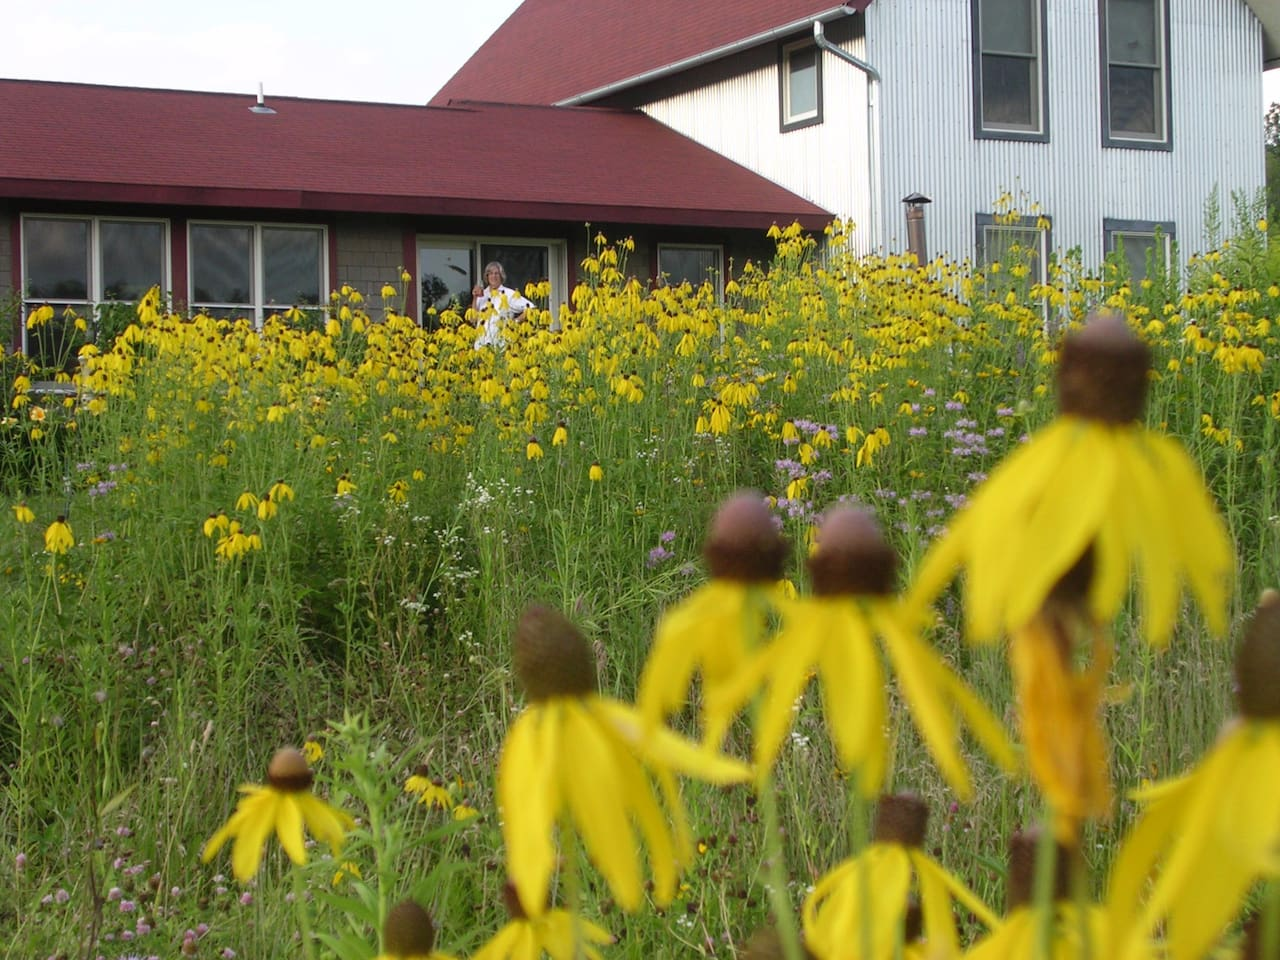 Pairie coneflowers of July-August